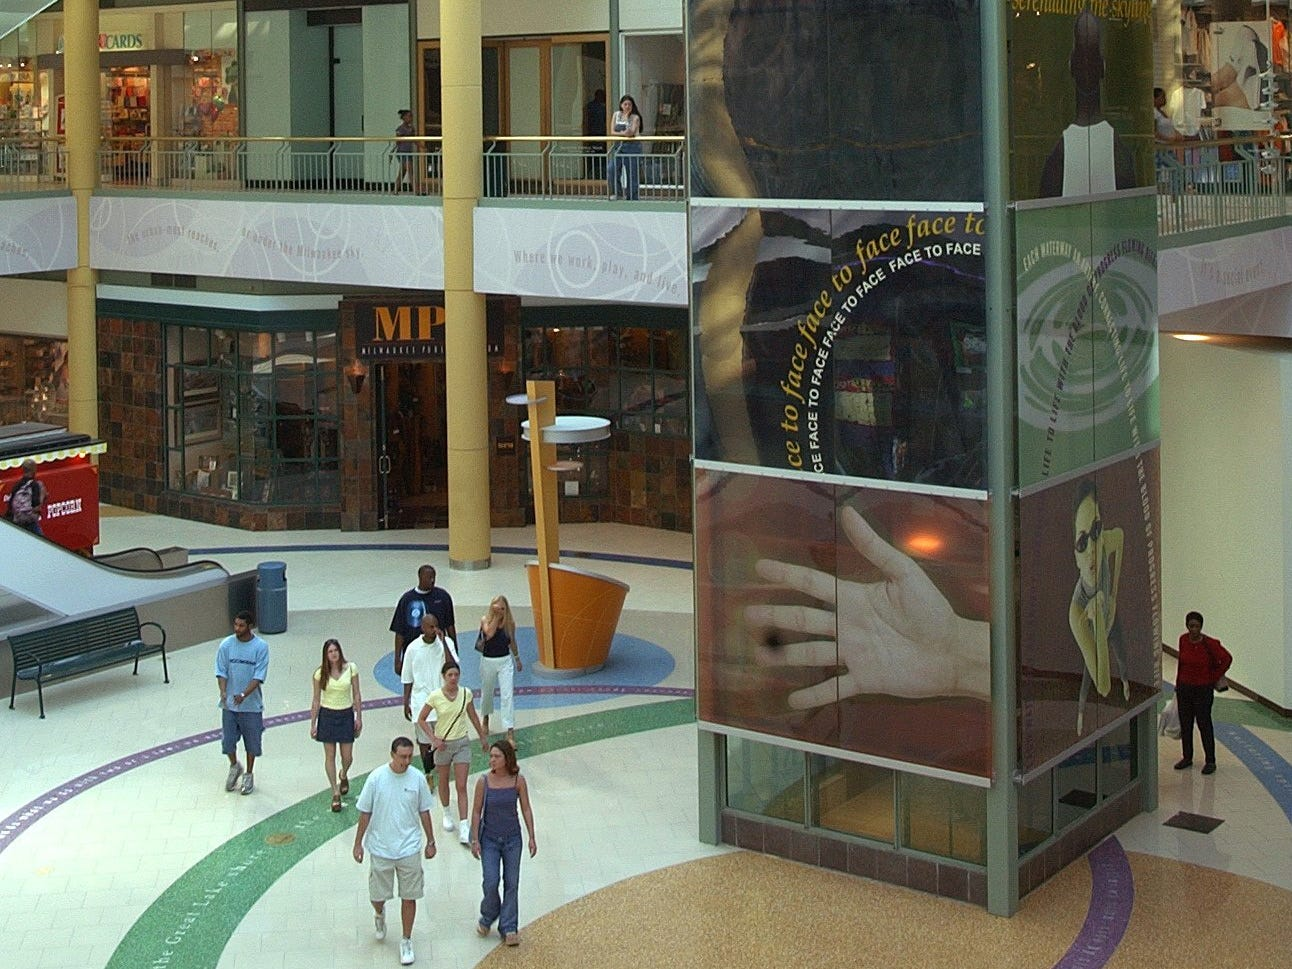 March 16, 2002 Atrium area of the Grand Ave Mall.